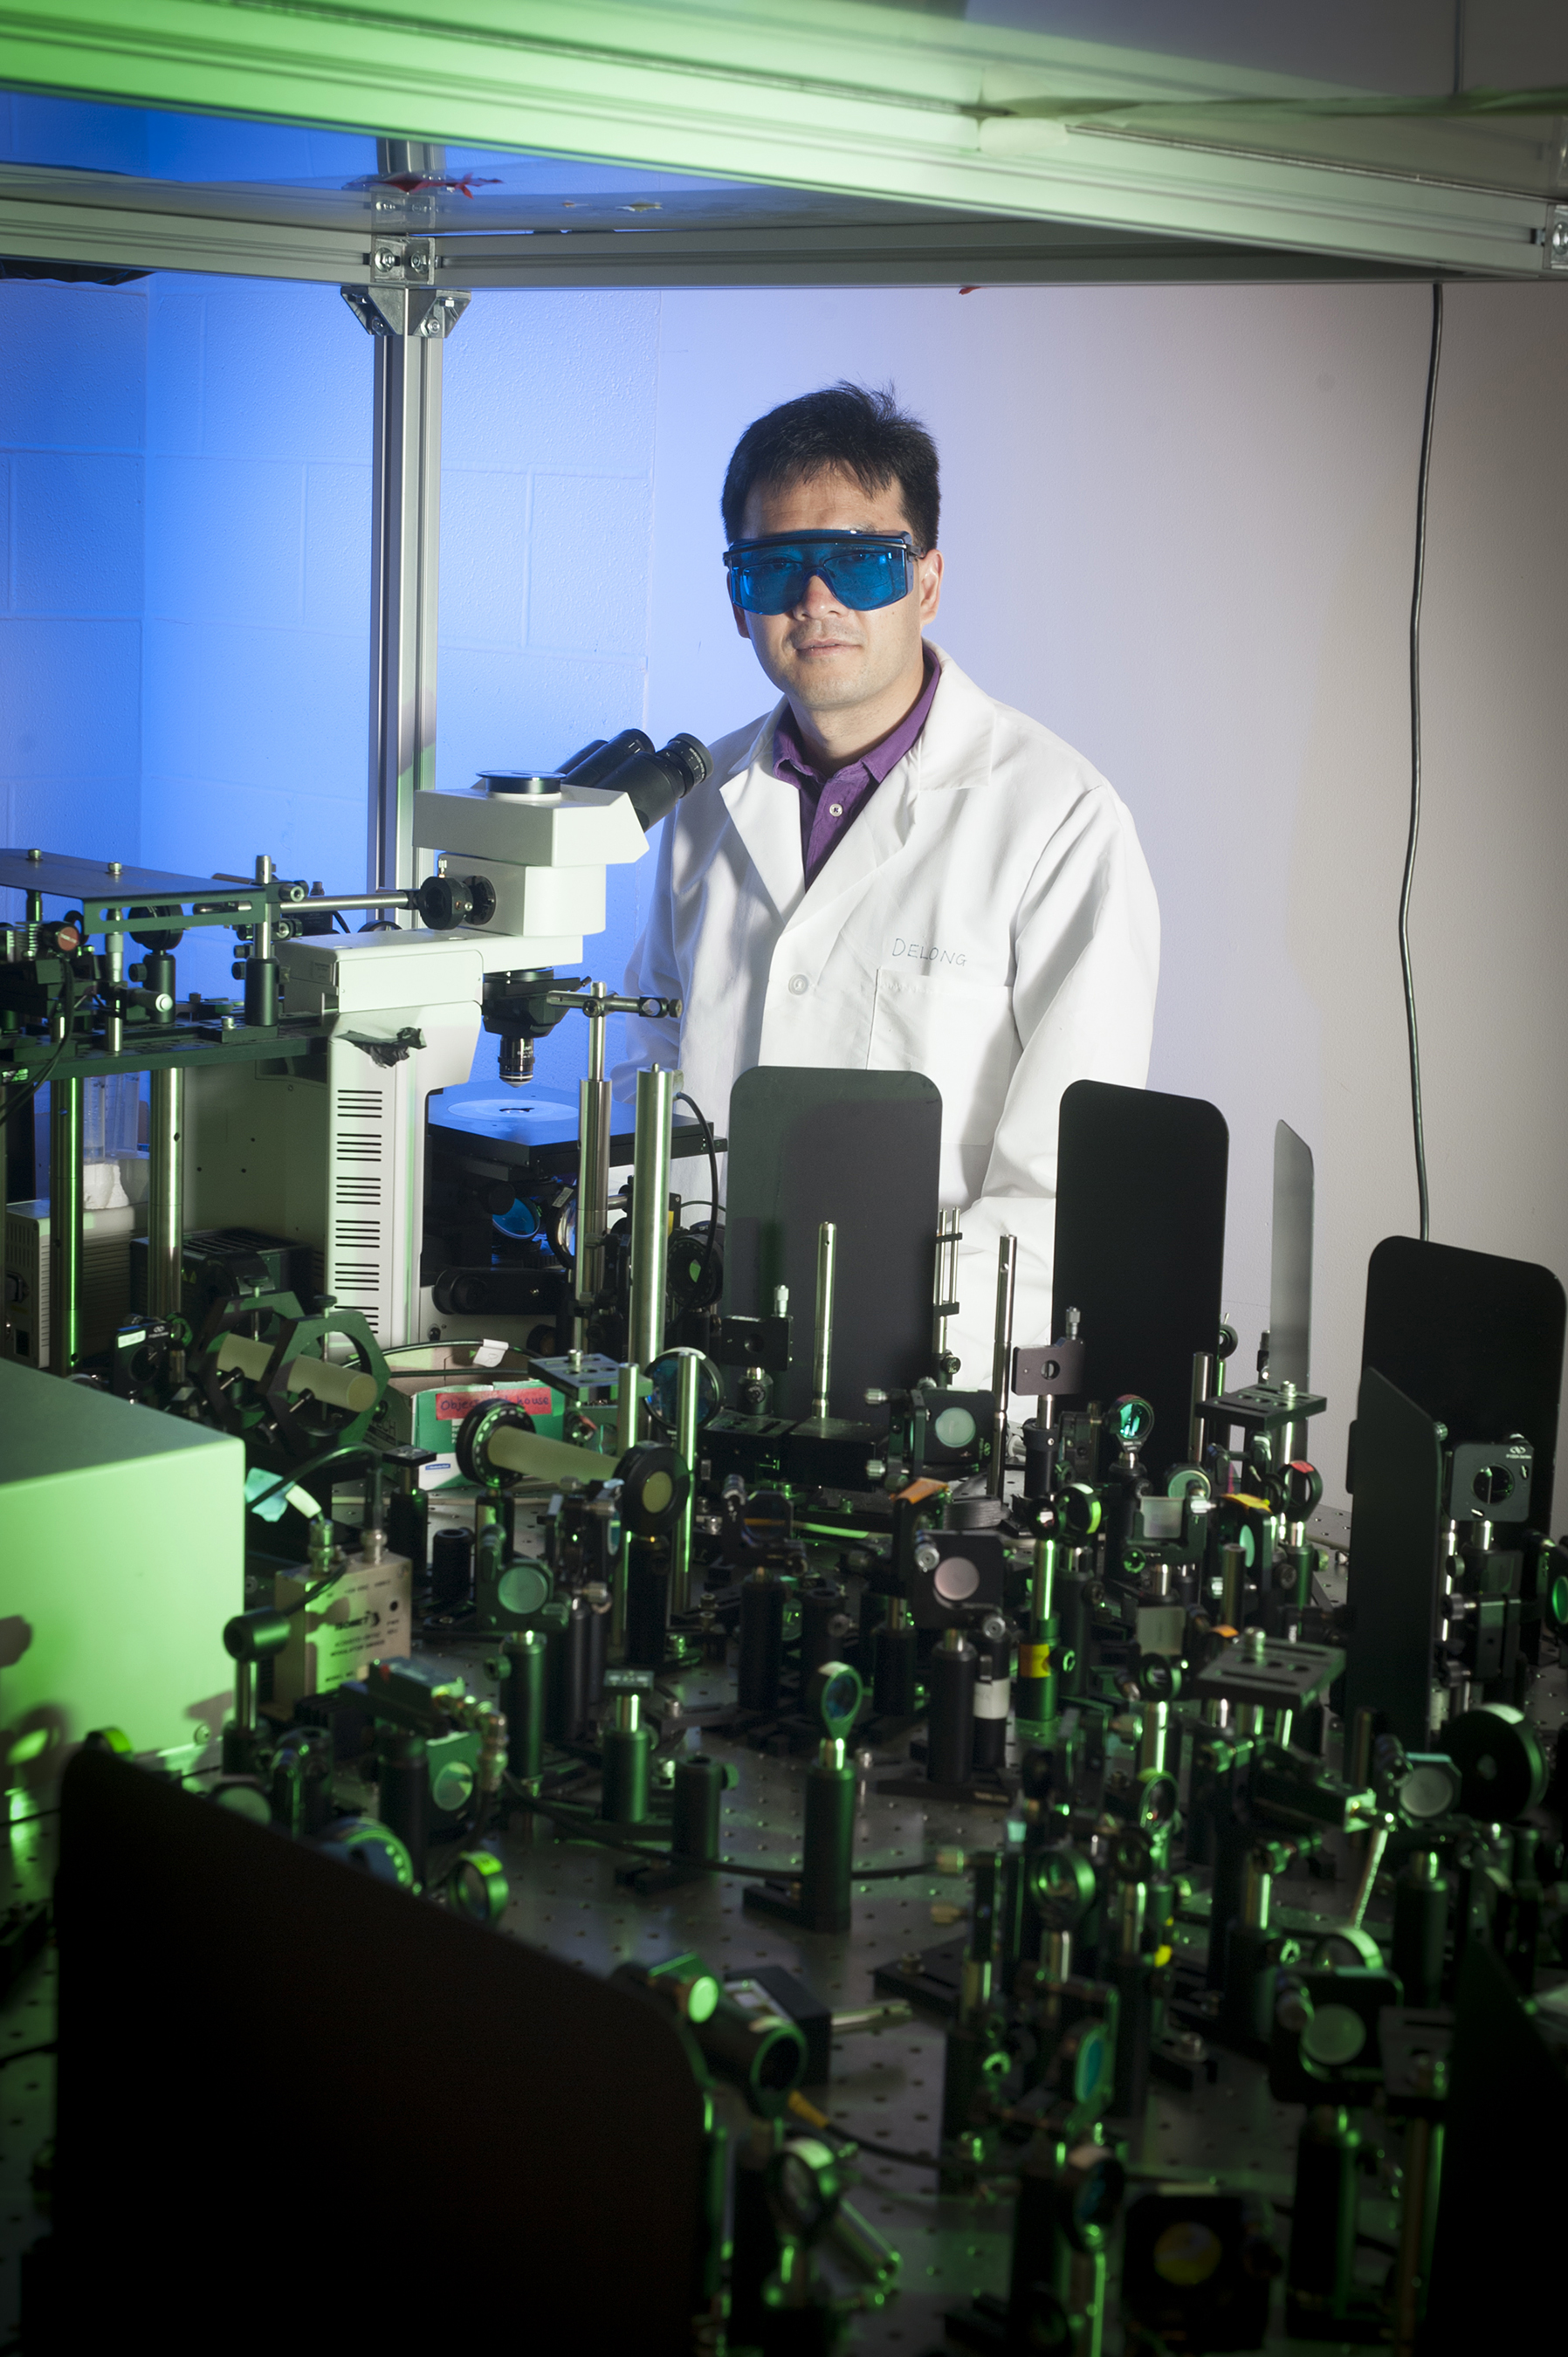 New Imaging Technology Is Advance For Medical Diagnostics